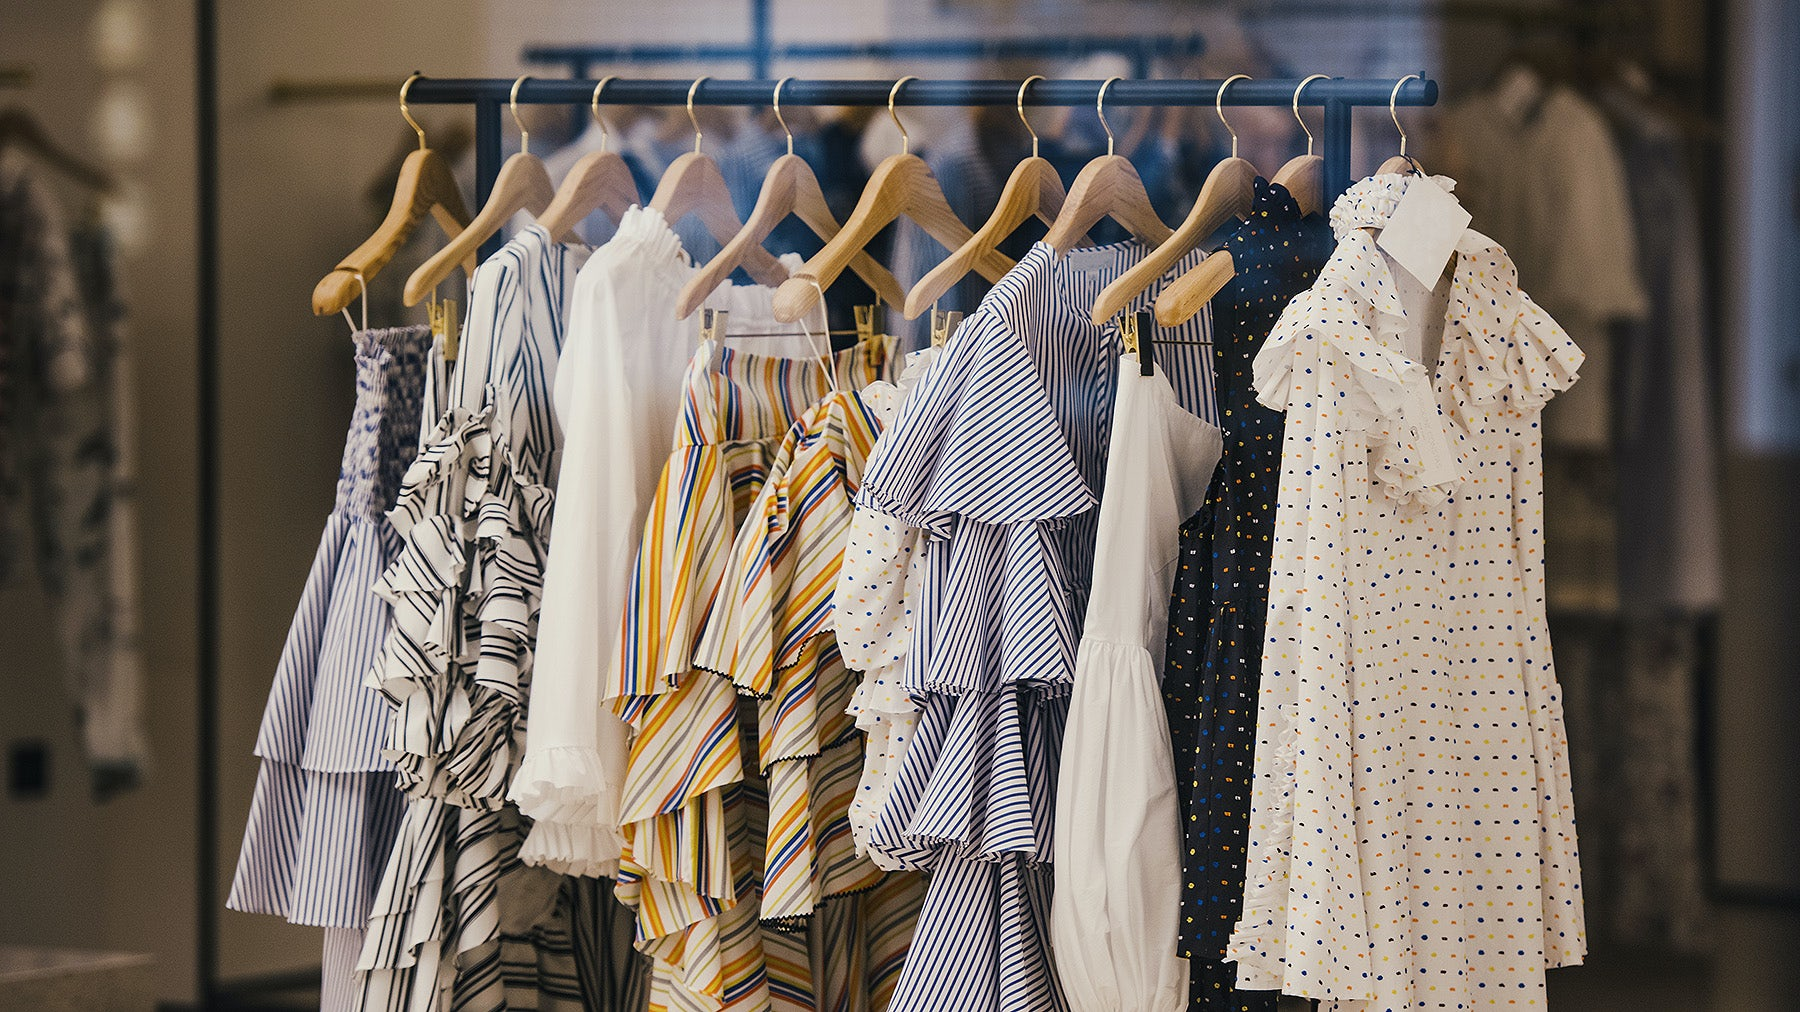 The Retail Apocalypse Is Fuelled By No Name Clothes News Analysis Bof